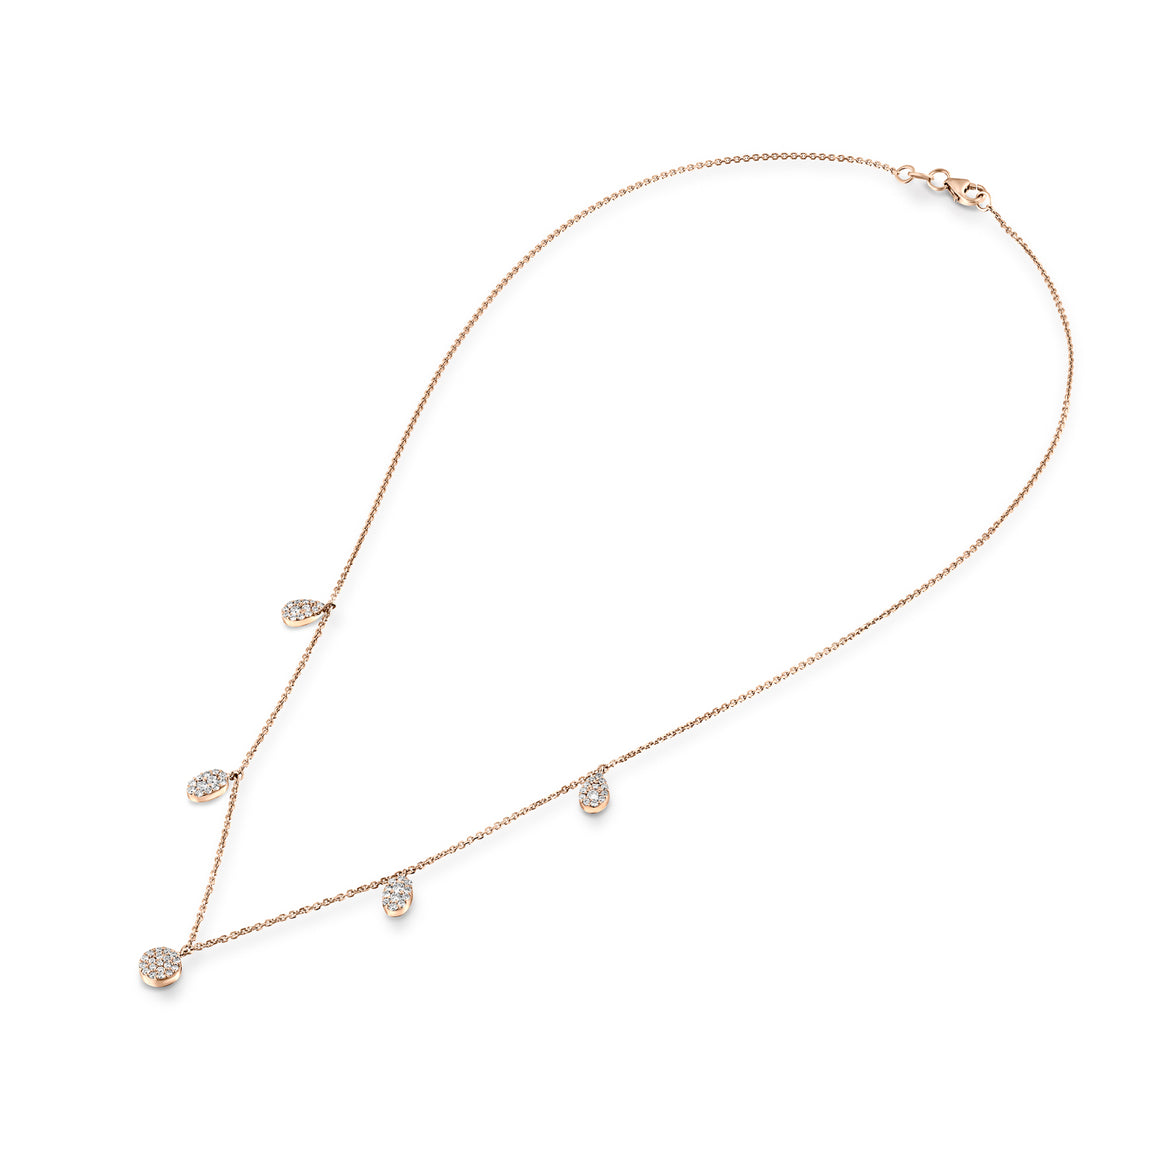 CEL003 diamonds Rose/yellow or white  Gold Choker Necklace